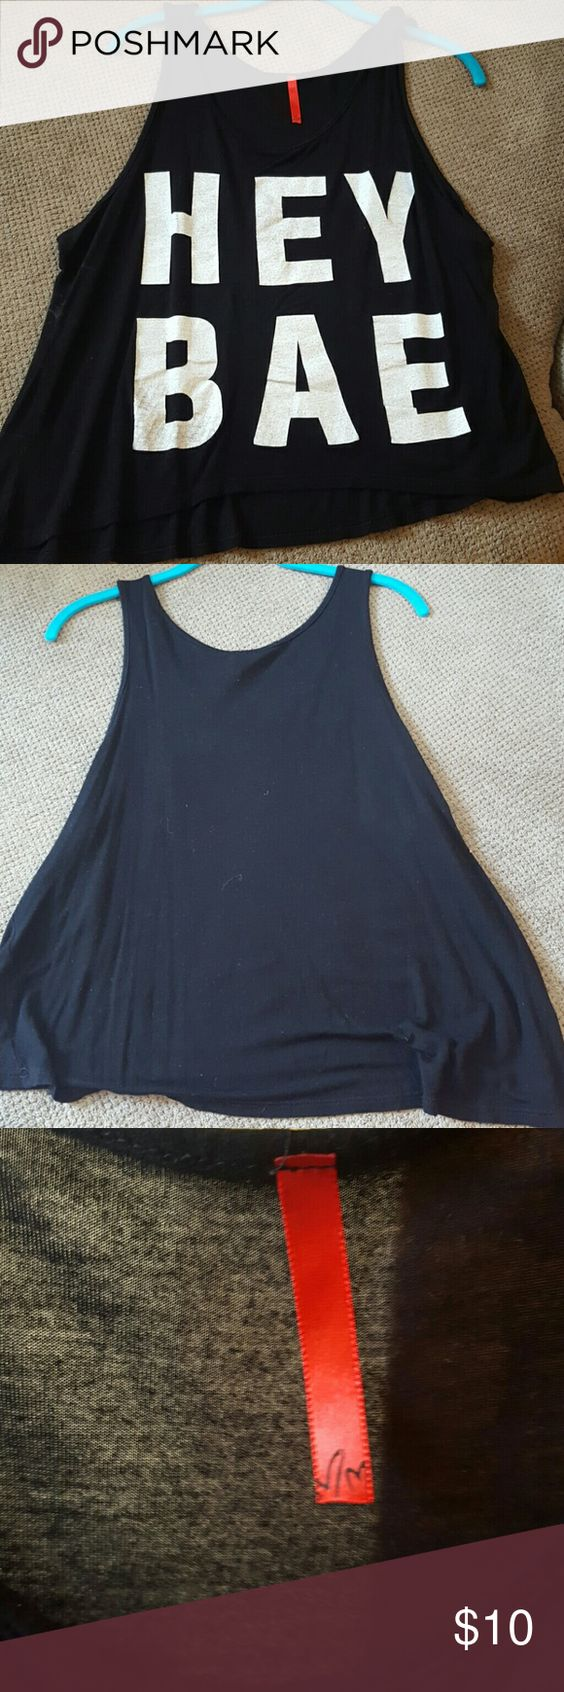 HEY BAE hi lo tank top Super cute tank top that's just a tad shorter in front than the back. No size on it but I'd say it's a Large and can fit an XL also Tops Tank Tops